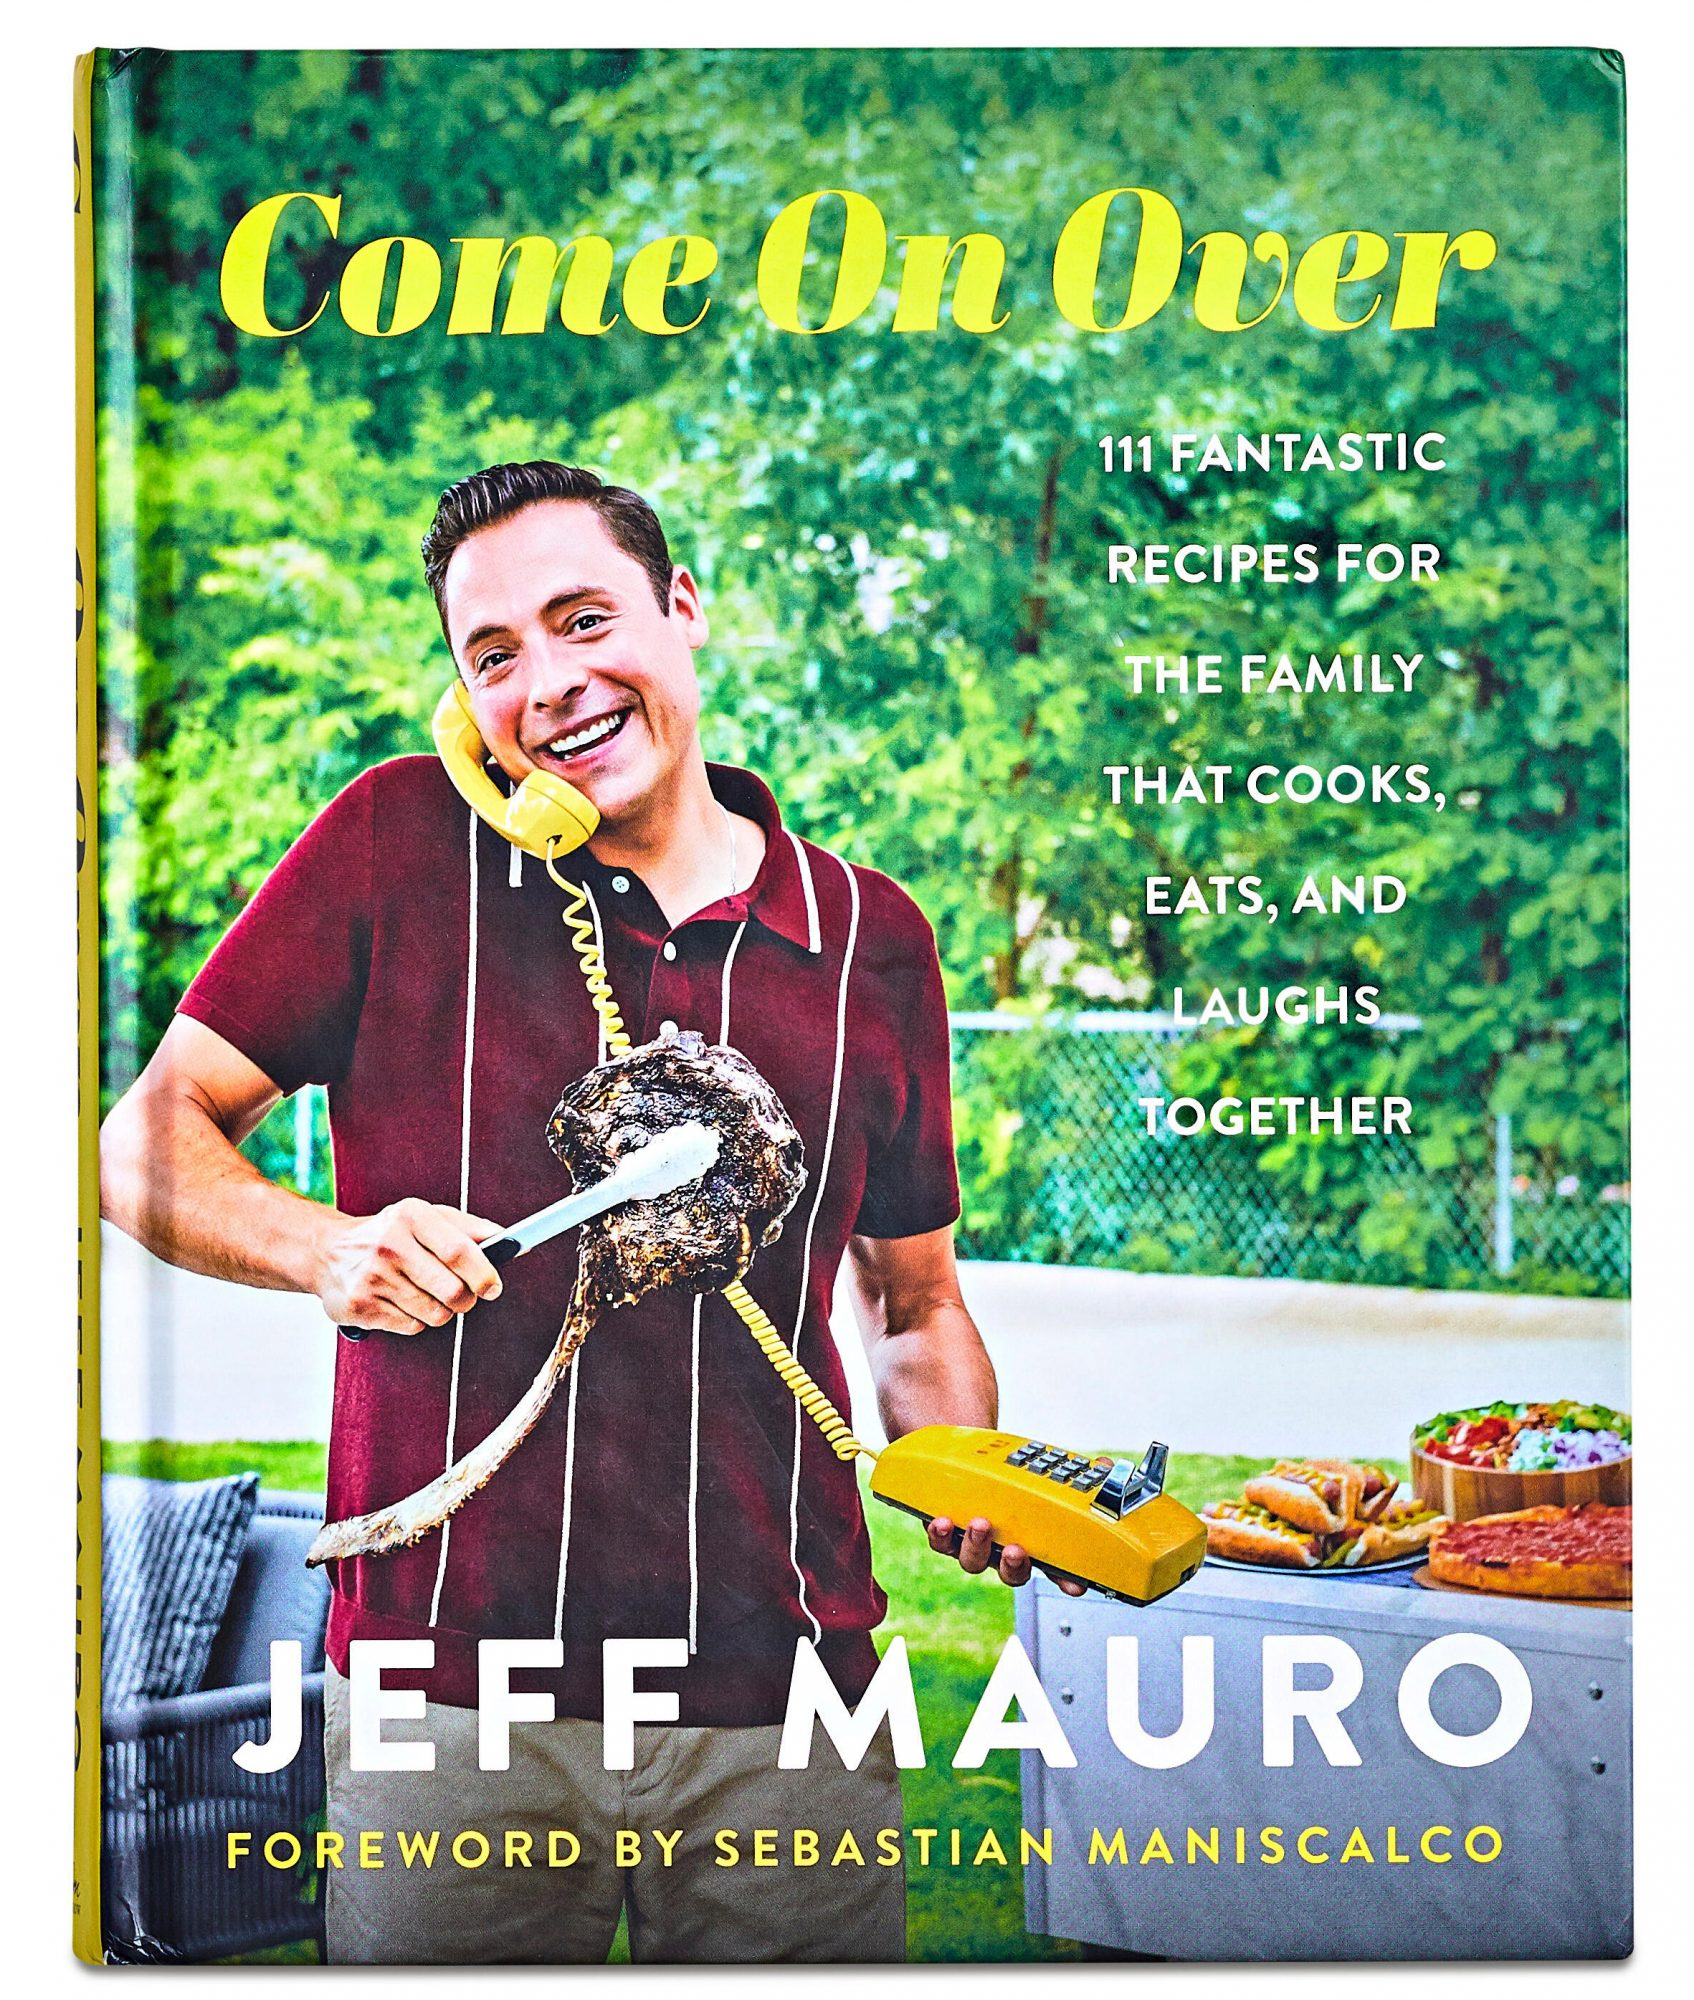 Come On Over cookbook by Jeff Mauro